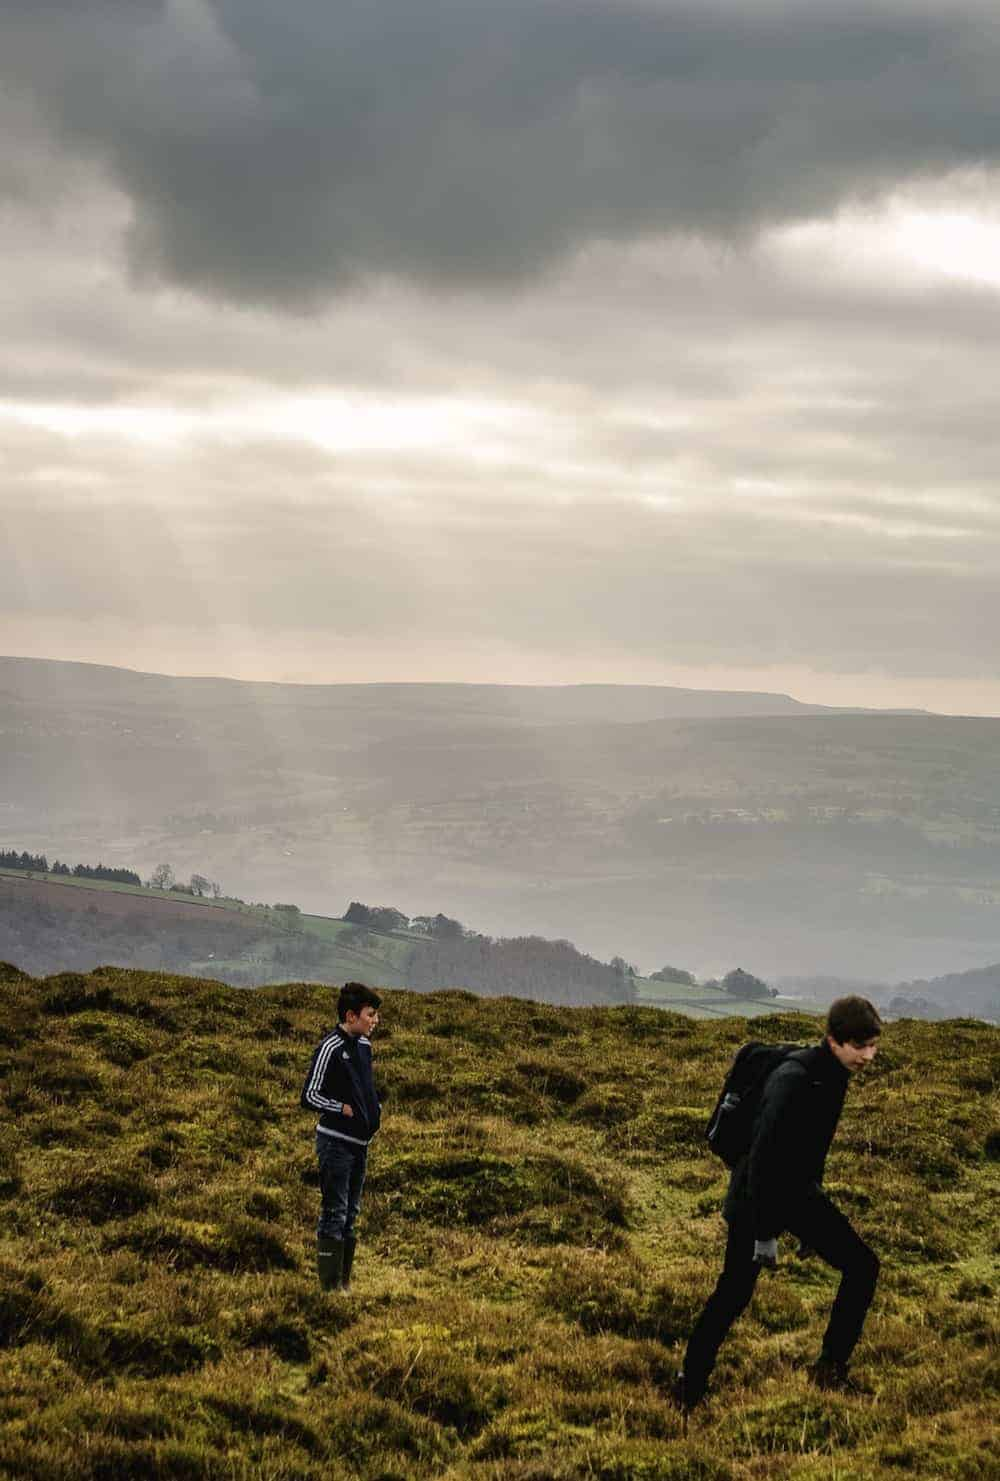 walking in the brecon beacons in wales near the black mountains between Abergavenny and Llanthony. Click through to see more images from our stay as well as inside shots of beautiful modern rustic Patrishow Farm where we stayed